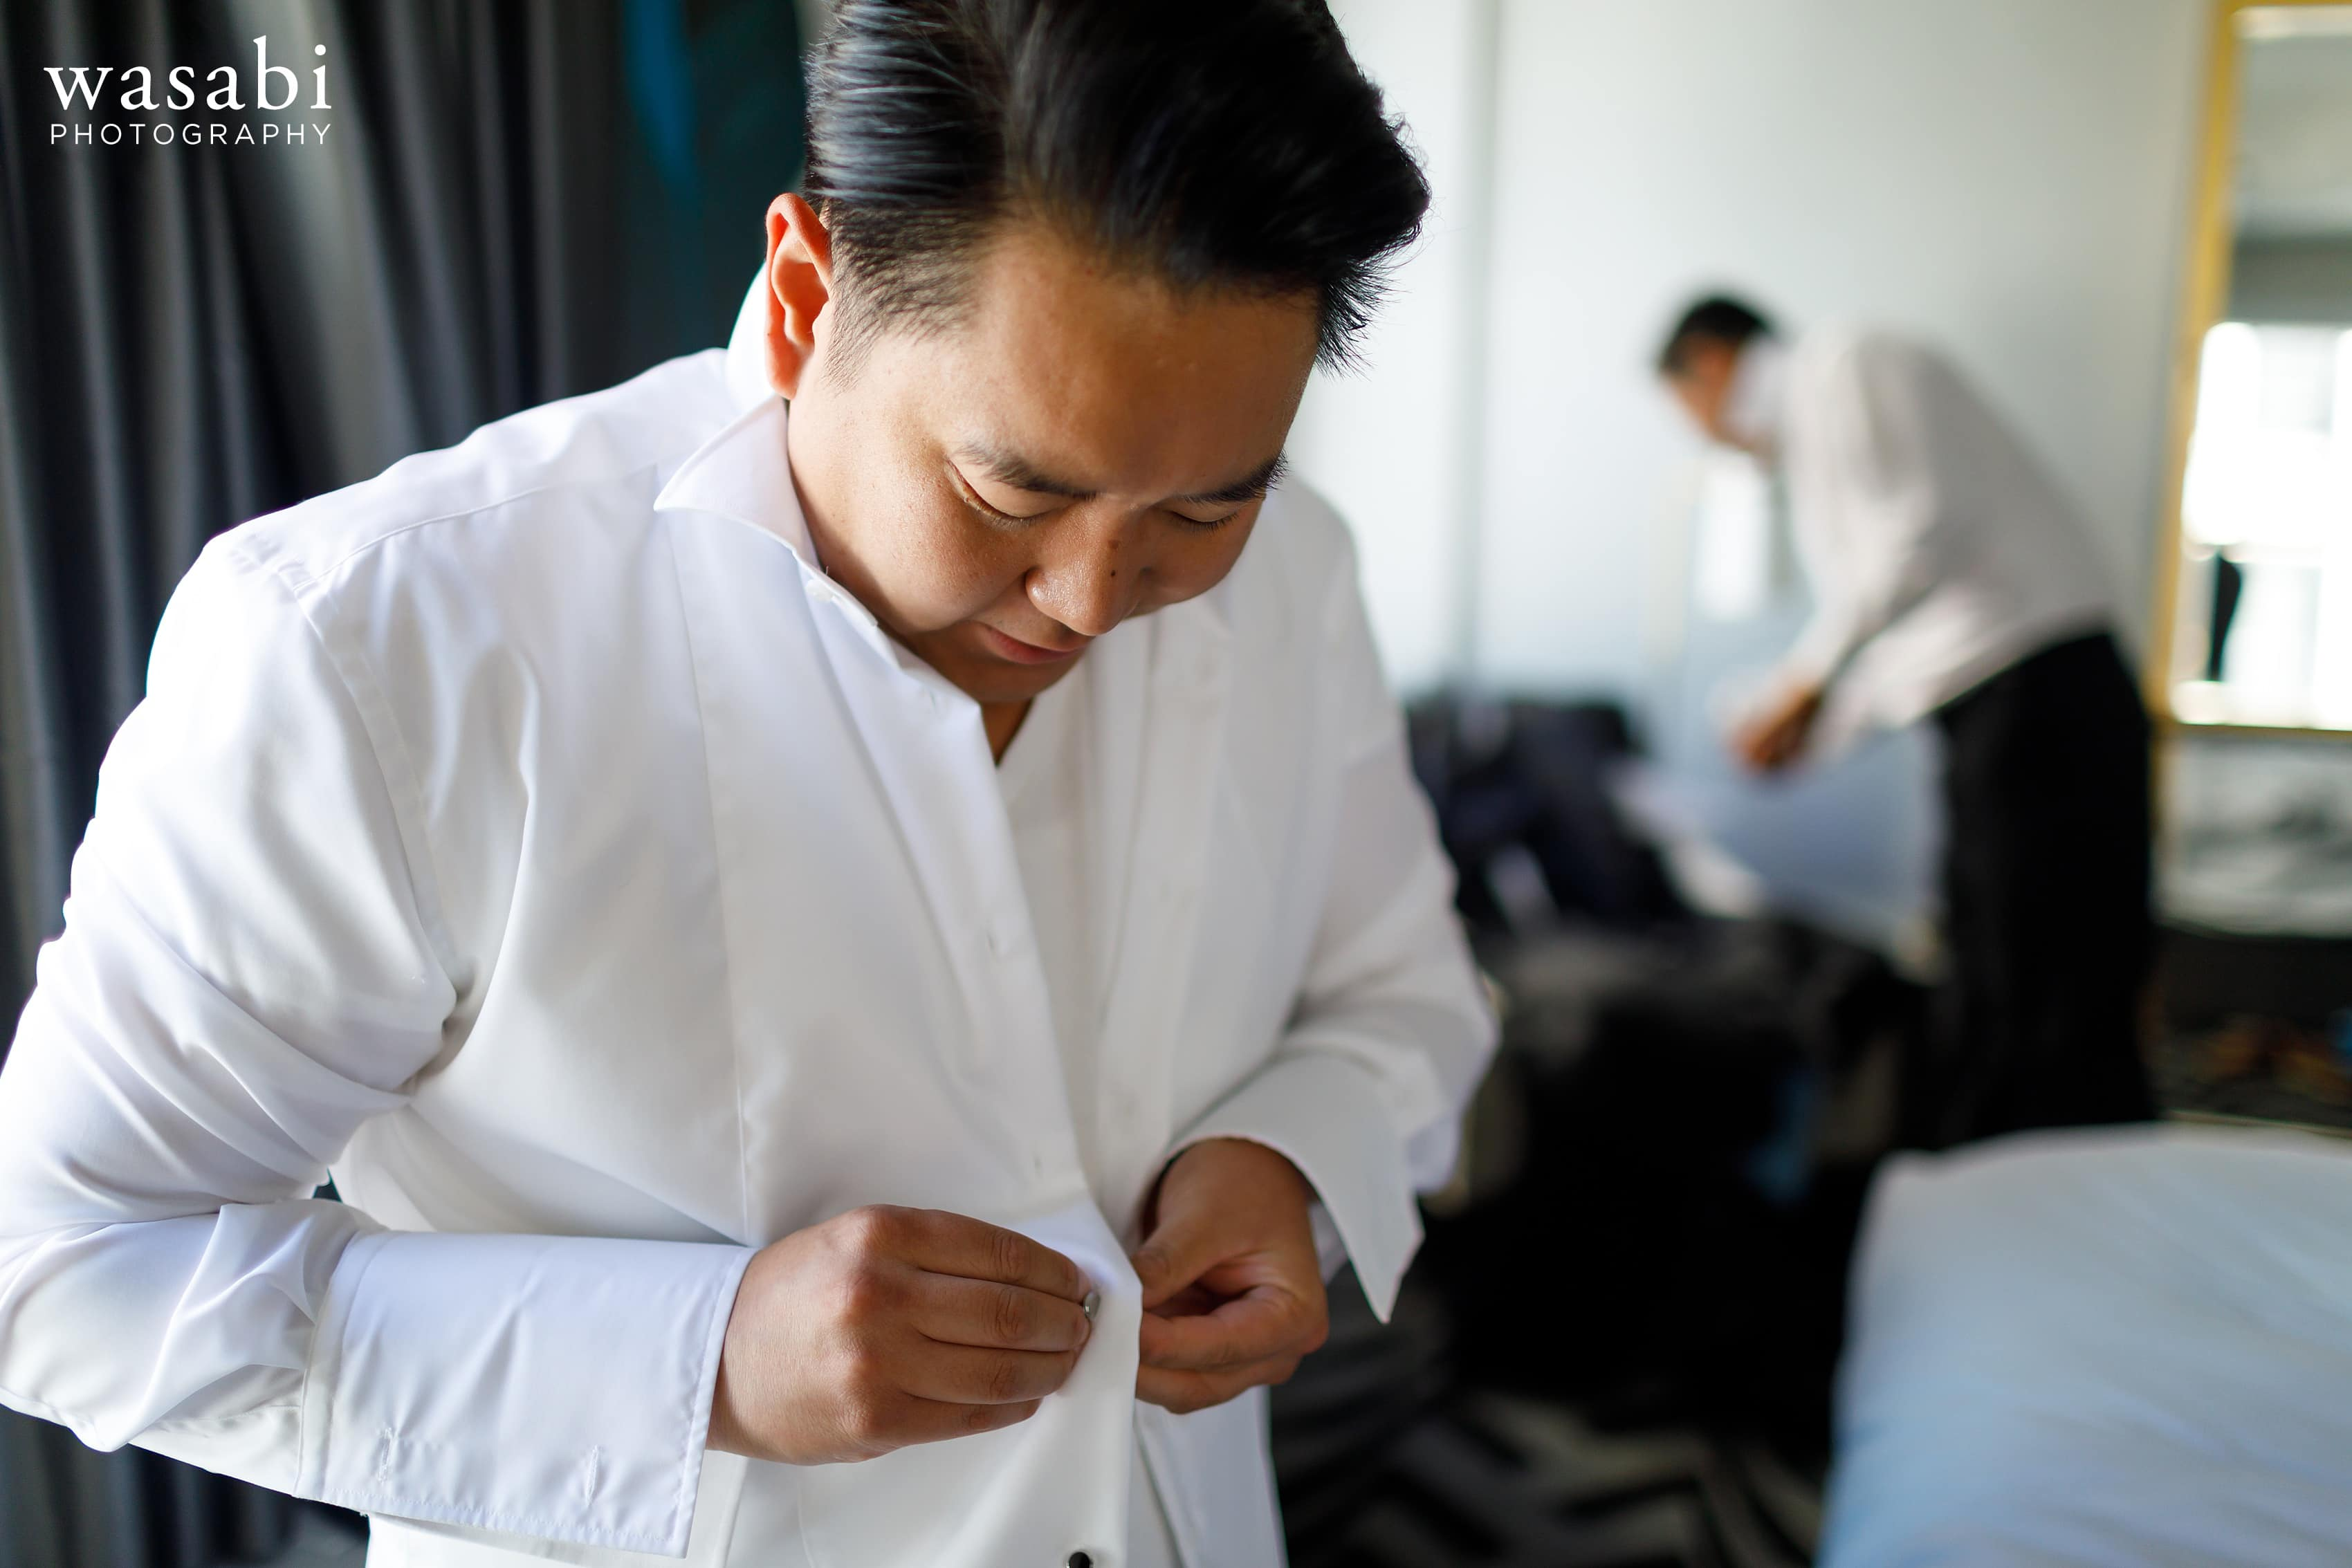 Groom buttons his shirt while getting ready for his wedding in hotel room